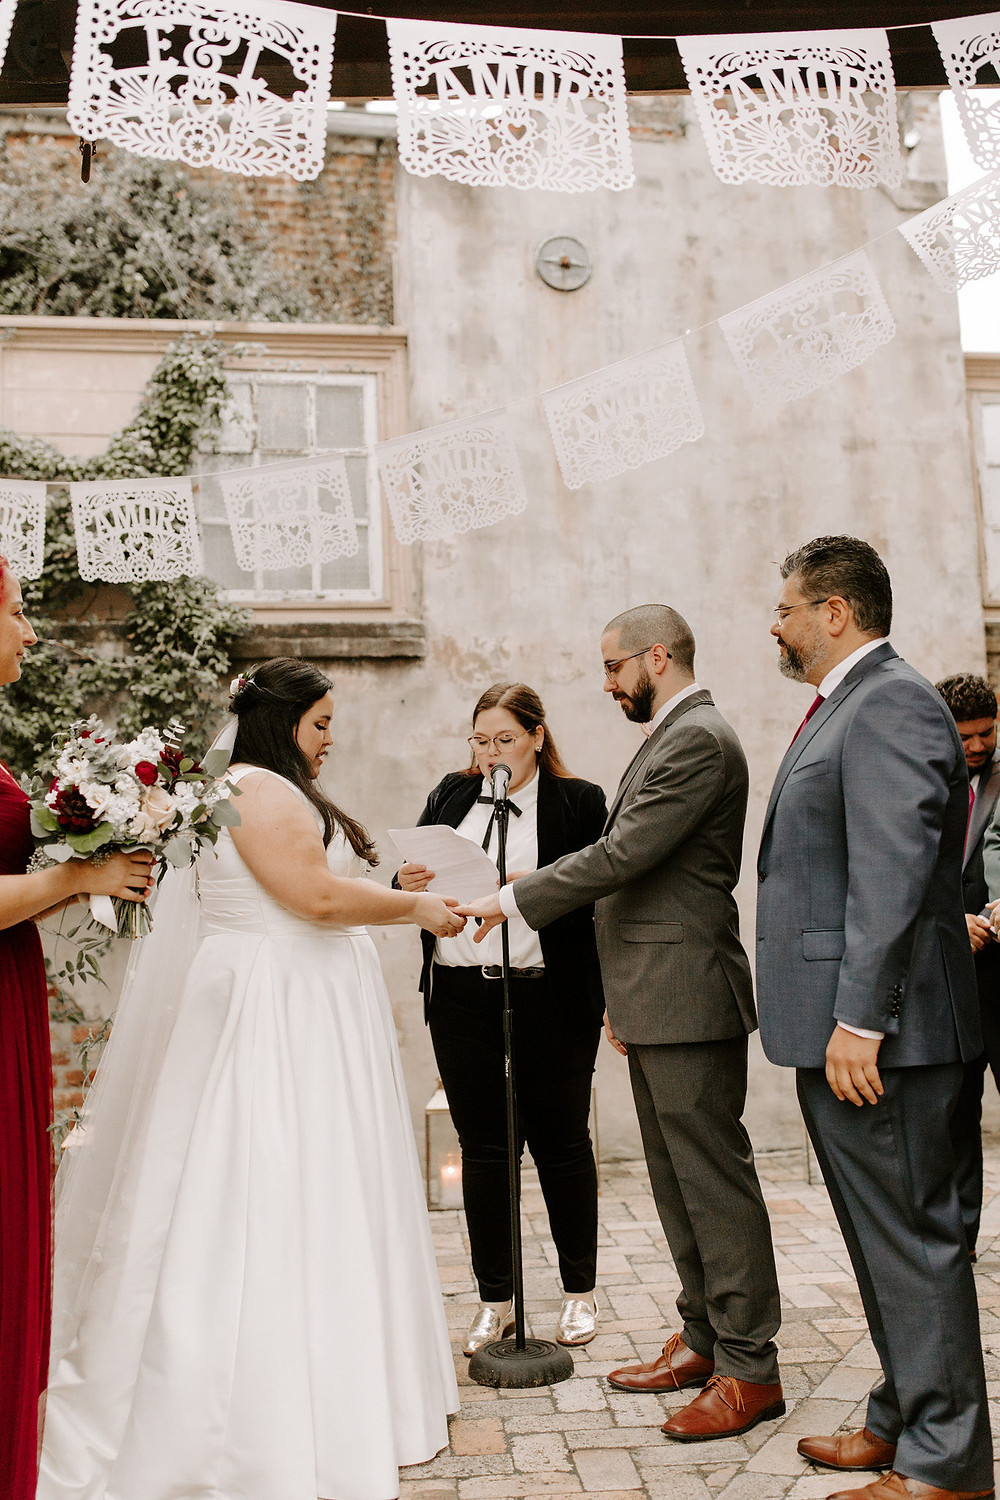 Race & Religious Wedding with Gabrielle Hail Photography, Leaf + Petal NOLA, Lovegood Wedding & Event Rentals in New Orleans / Vintage Rentals, Furniture, Decor, and so much more!